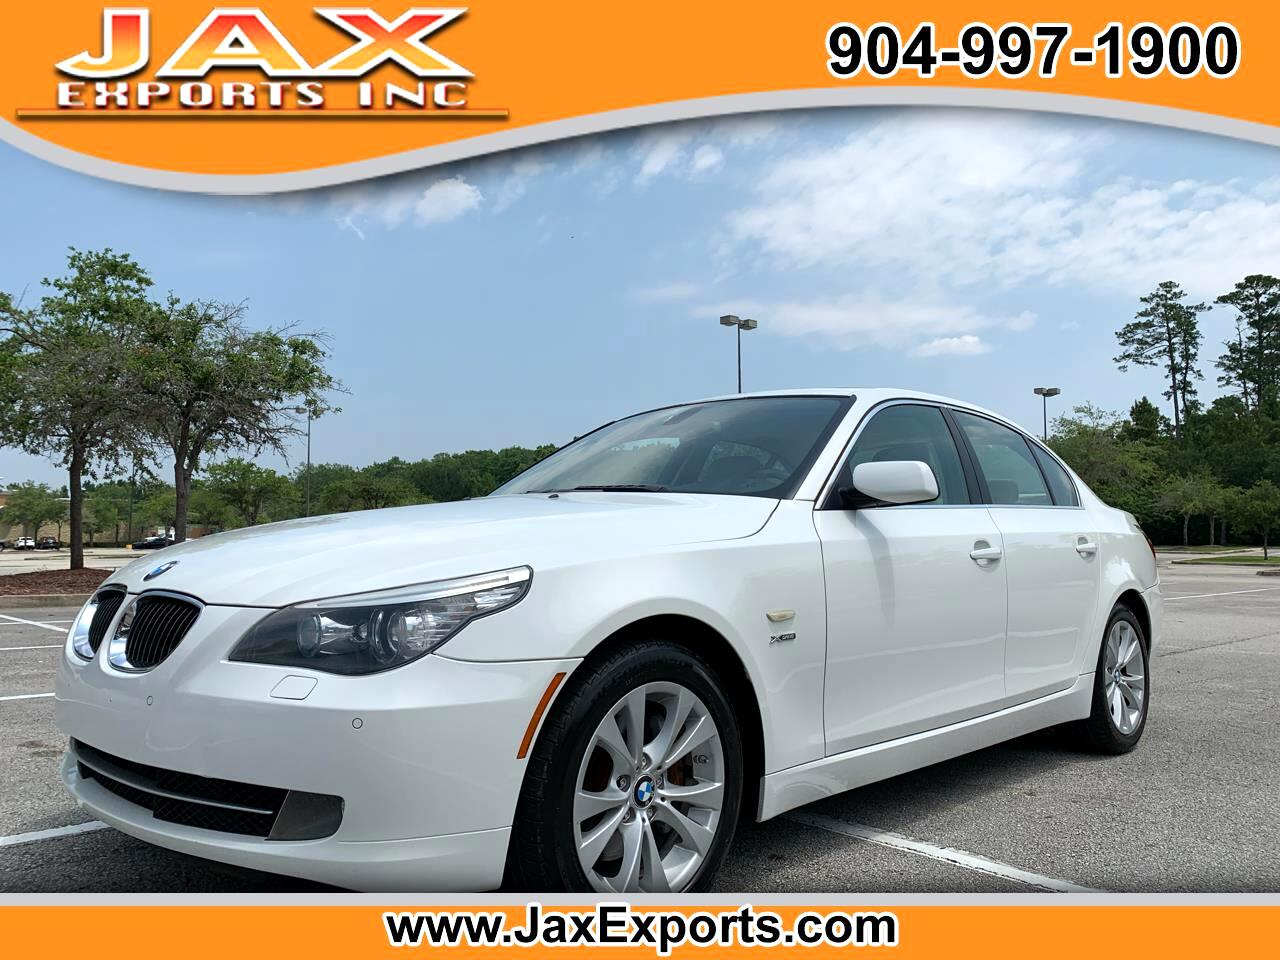 2010 BMW 5 Series 4dr Sdn 535i xDrive AWD